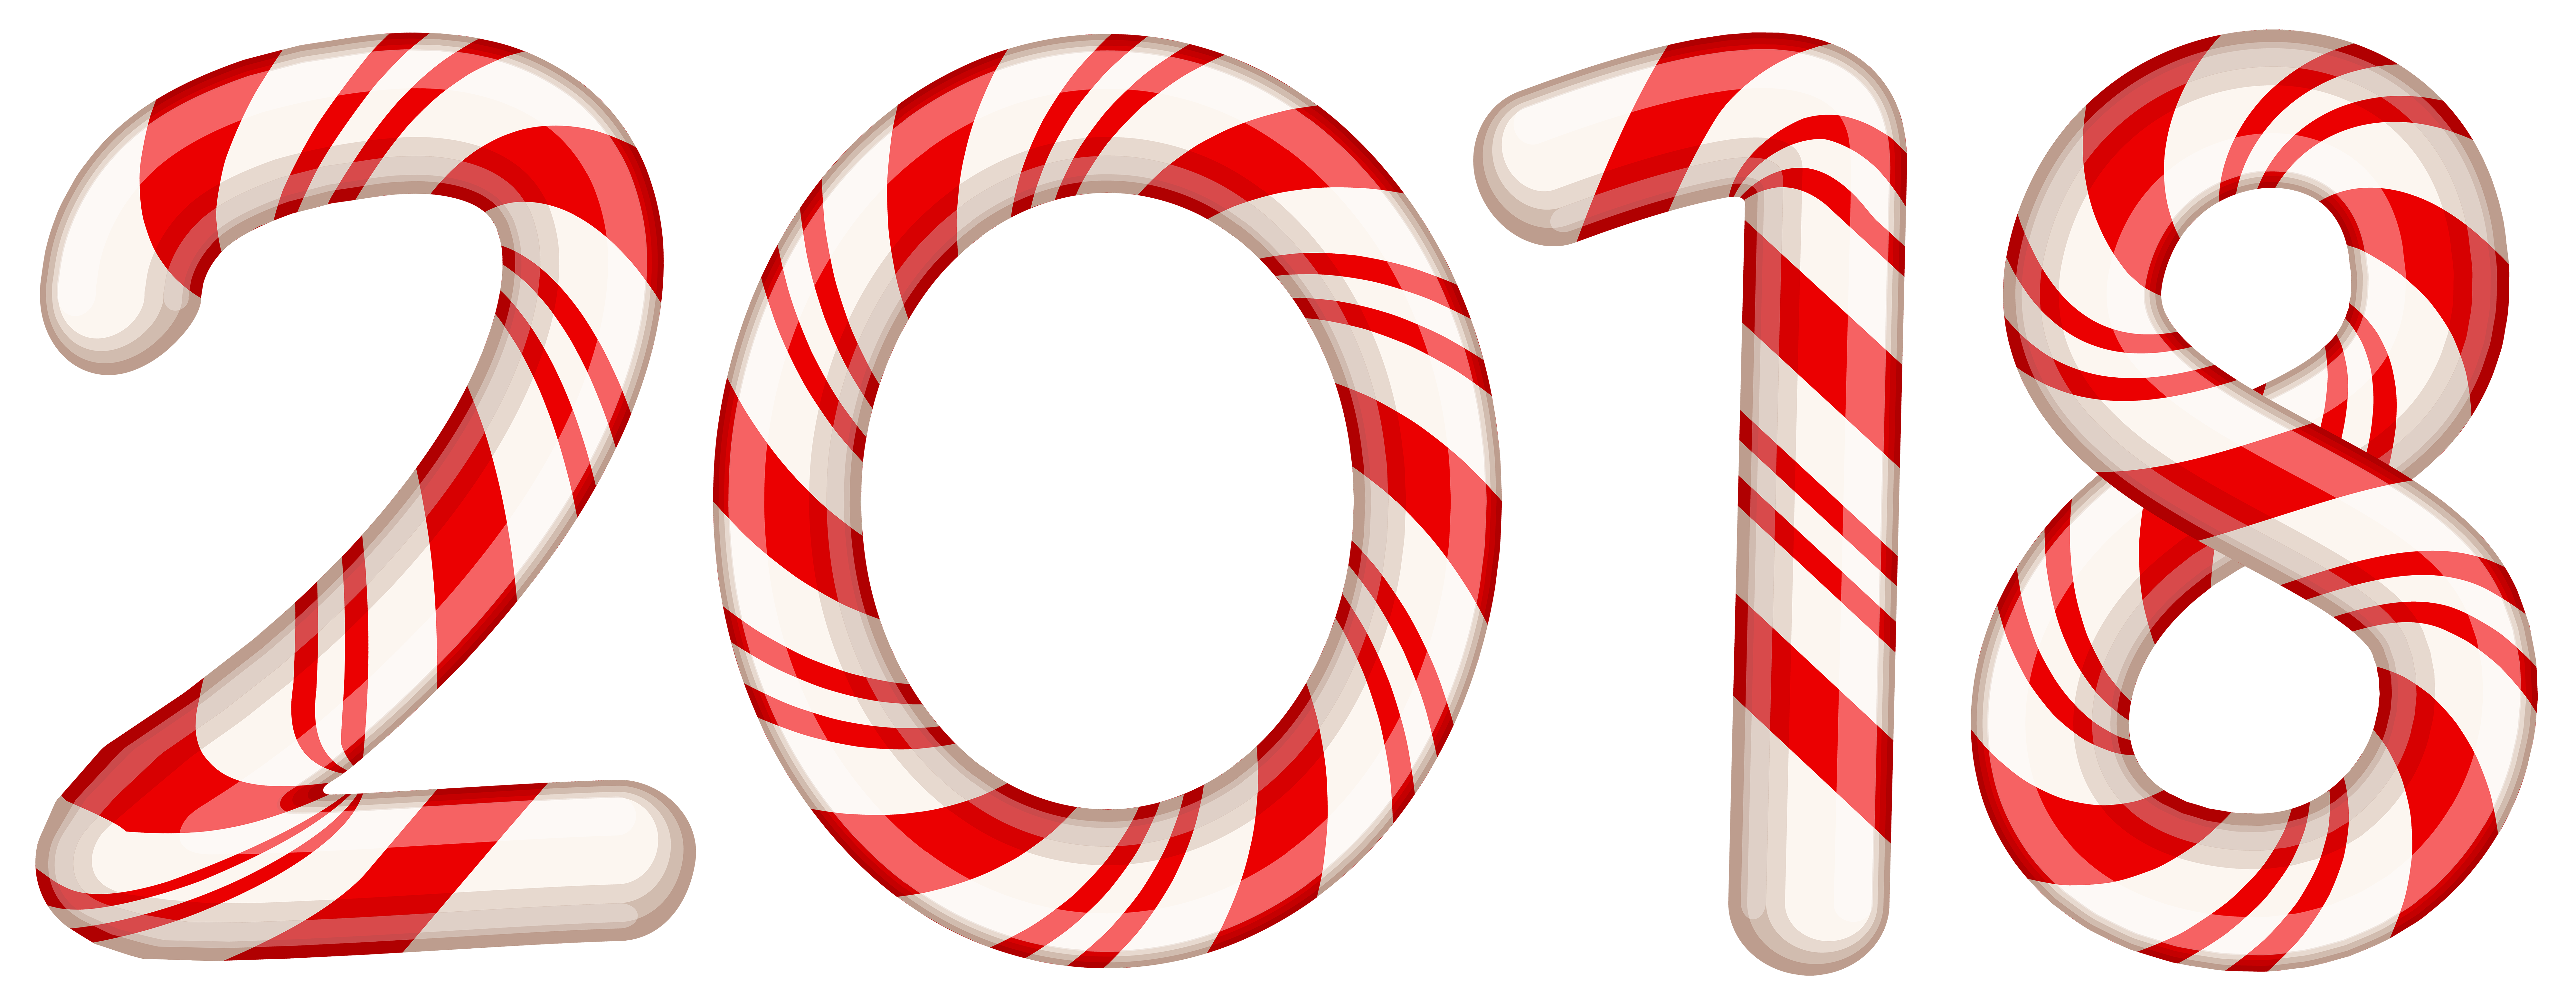 Christmas treats clipart vector freeuse Christmas Candy Cane Clipart at GetDrawings.com | Free for personal ... vector freeuse